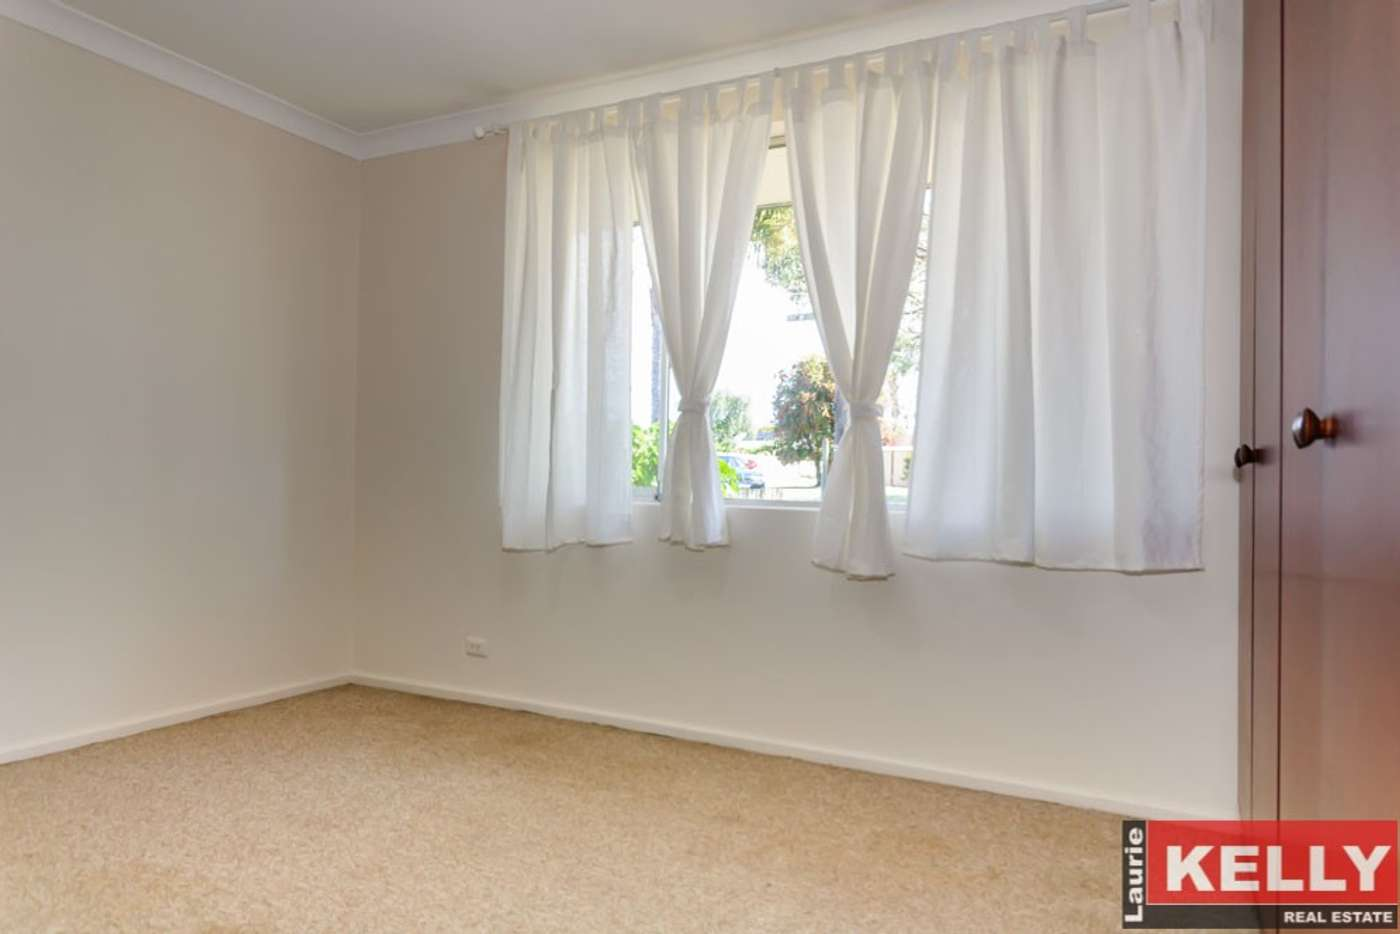 Sixth view of Homely house listing, 287 Knutsford Ave, Kewdale WA 6105